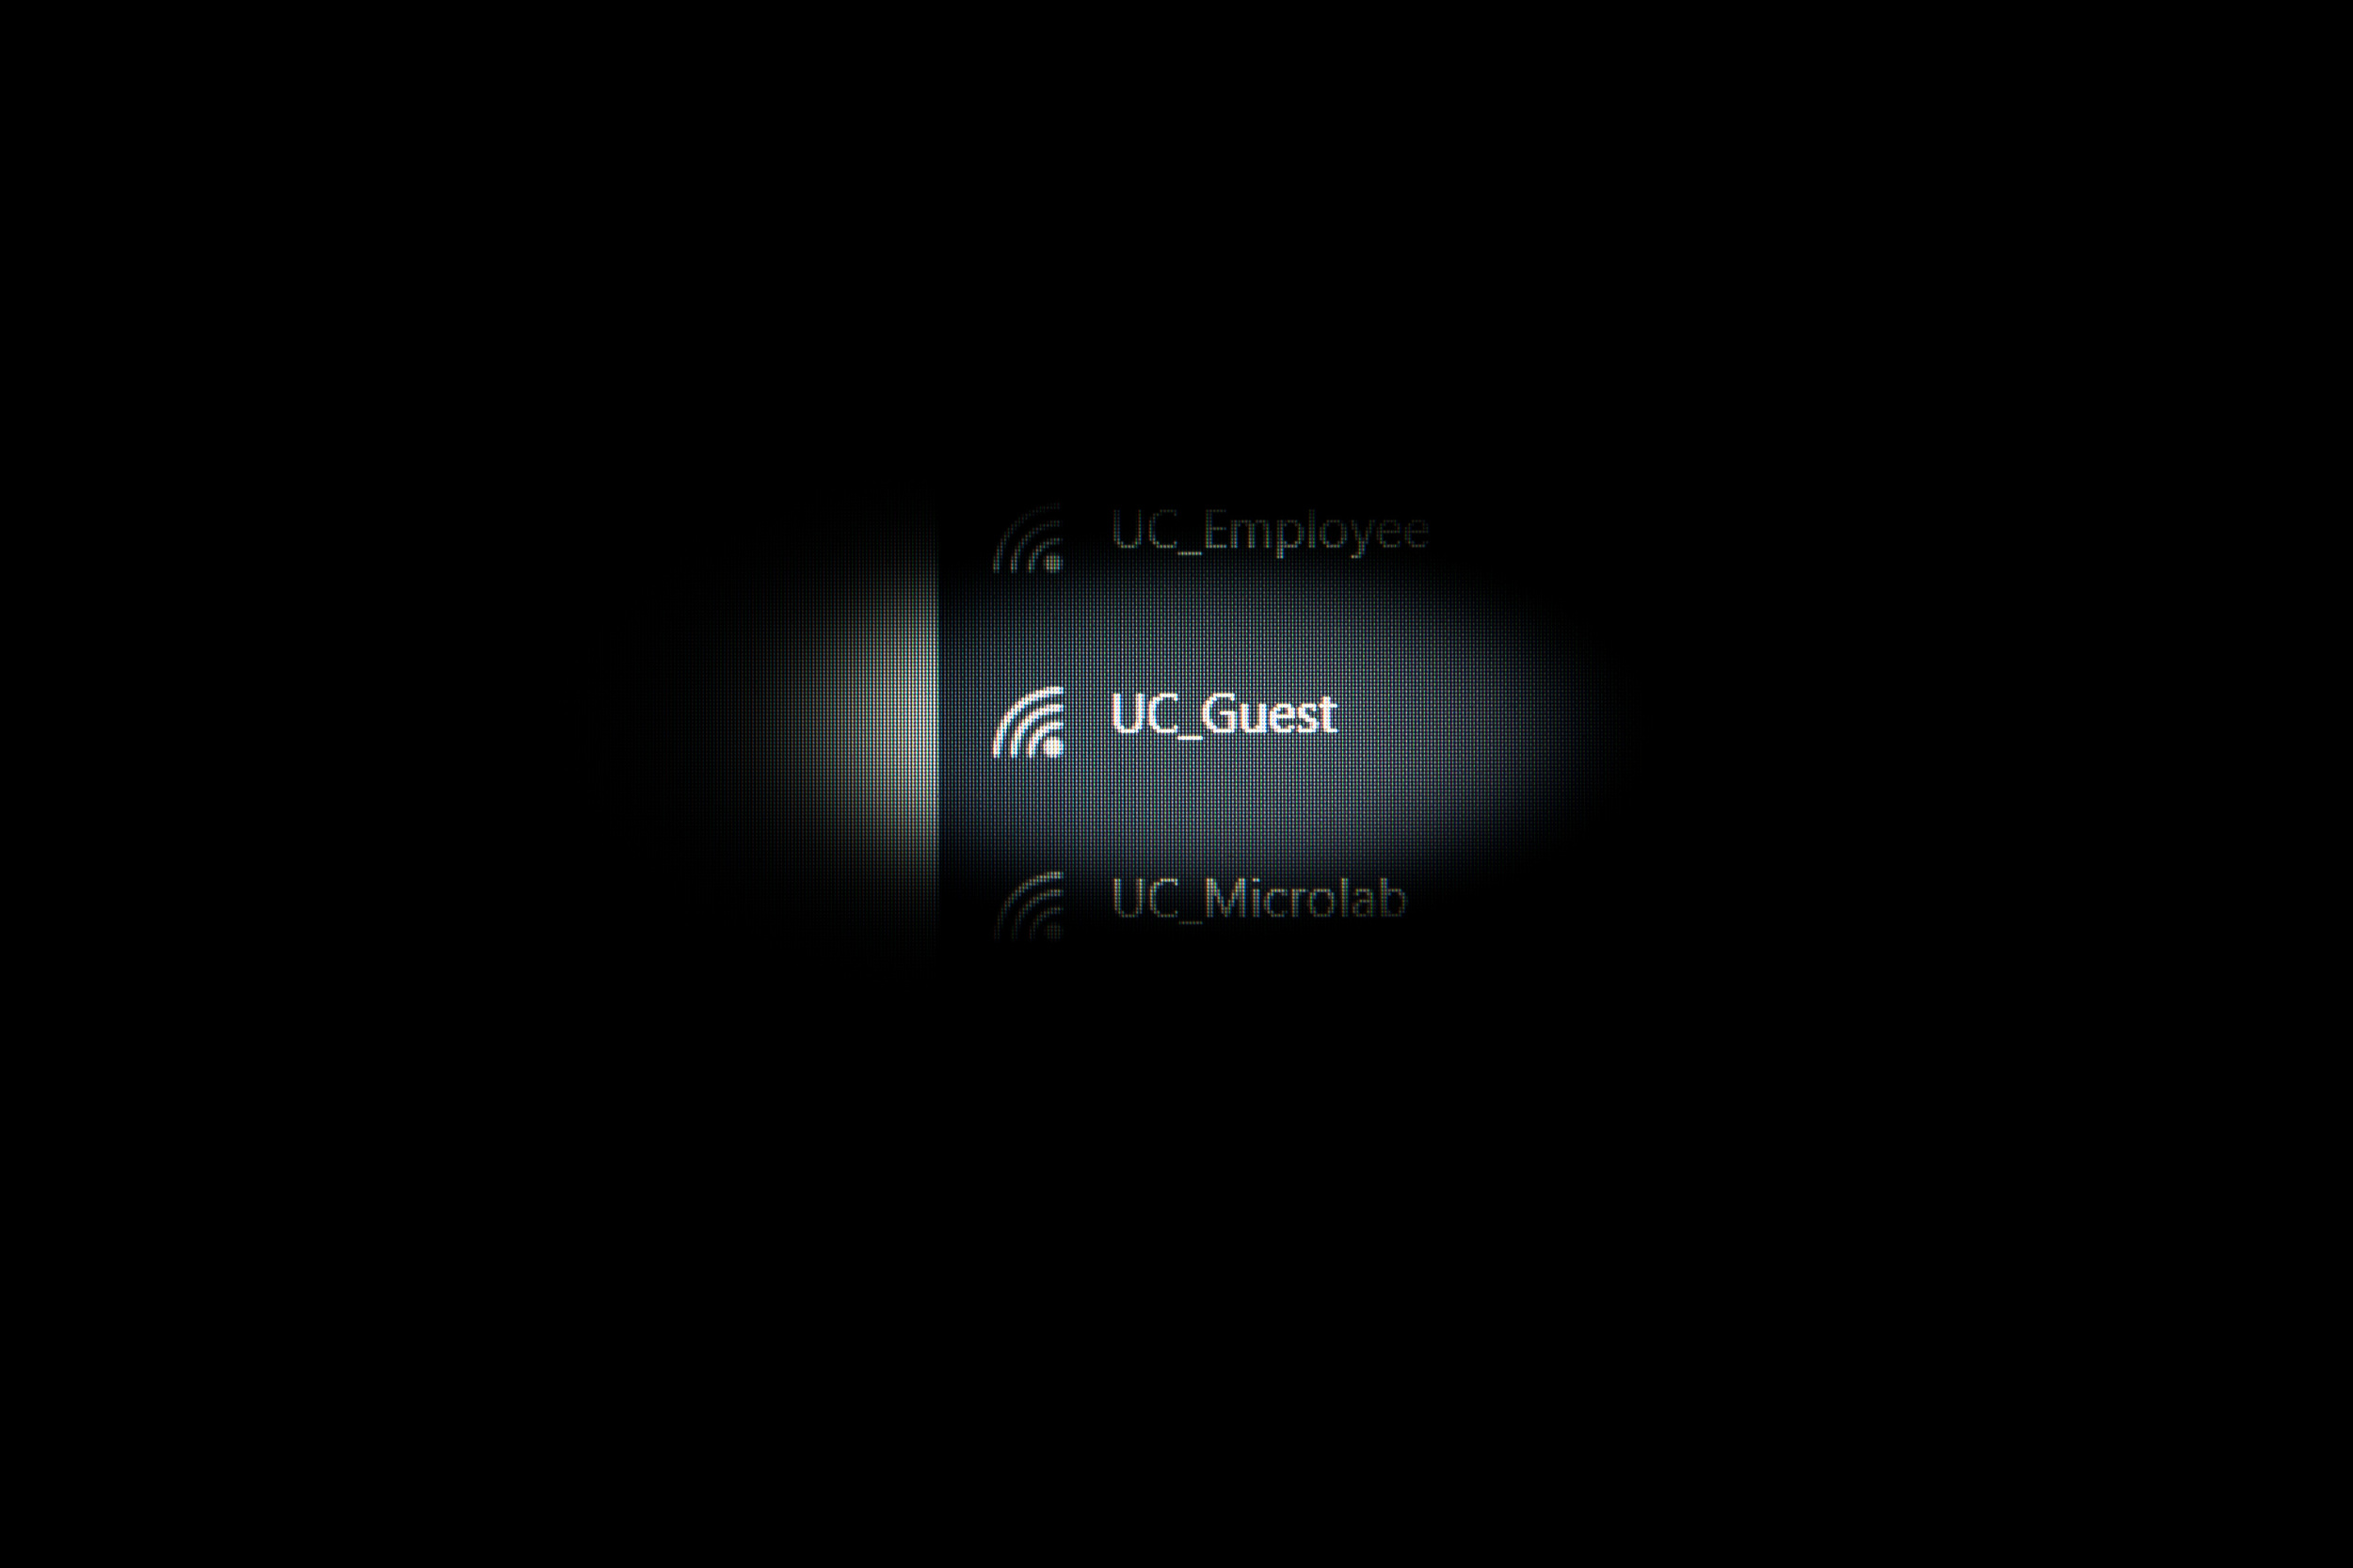 Connecting to UC_Guest during Acrofest and in the future will lead to slower connectivity.